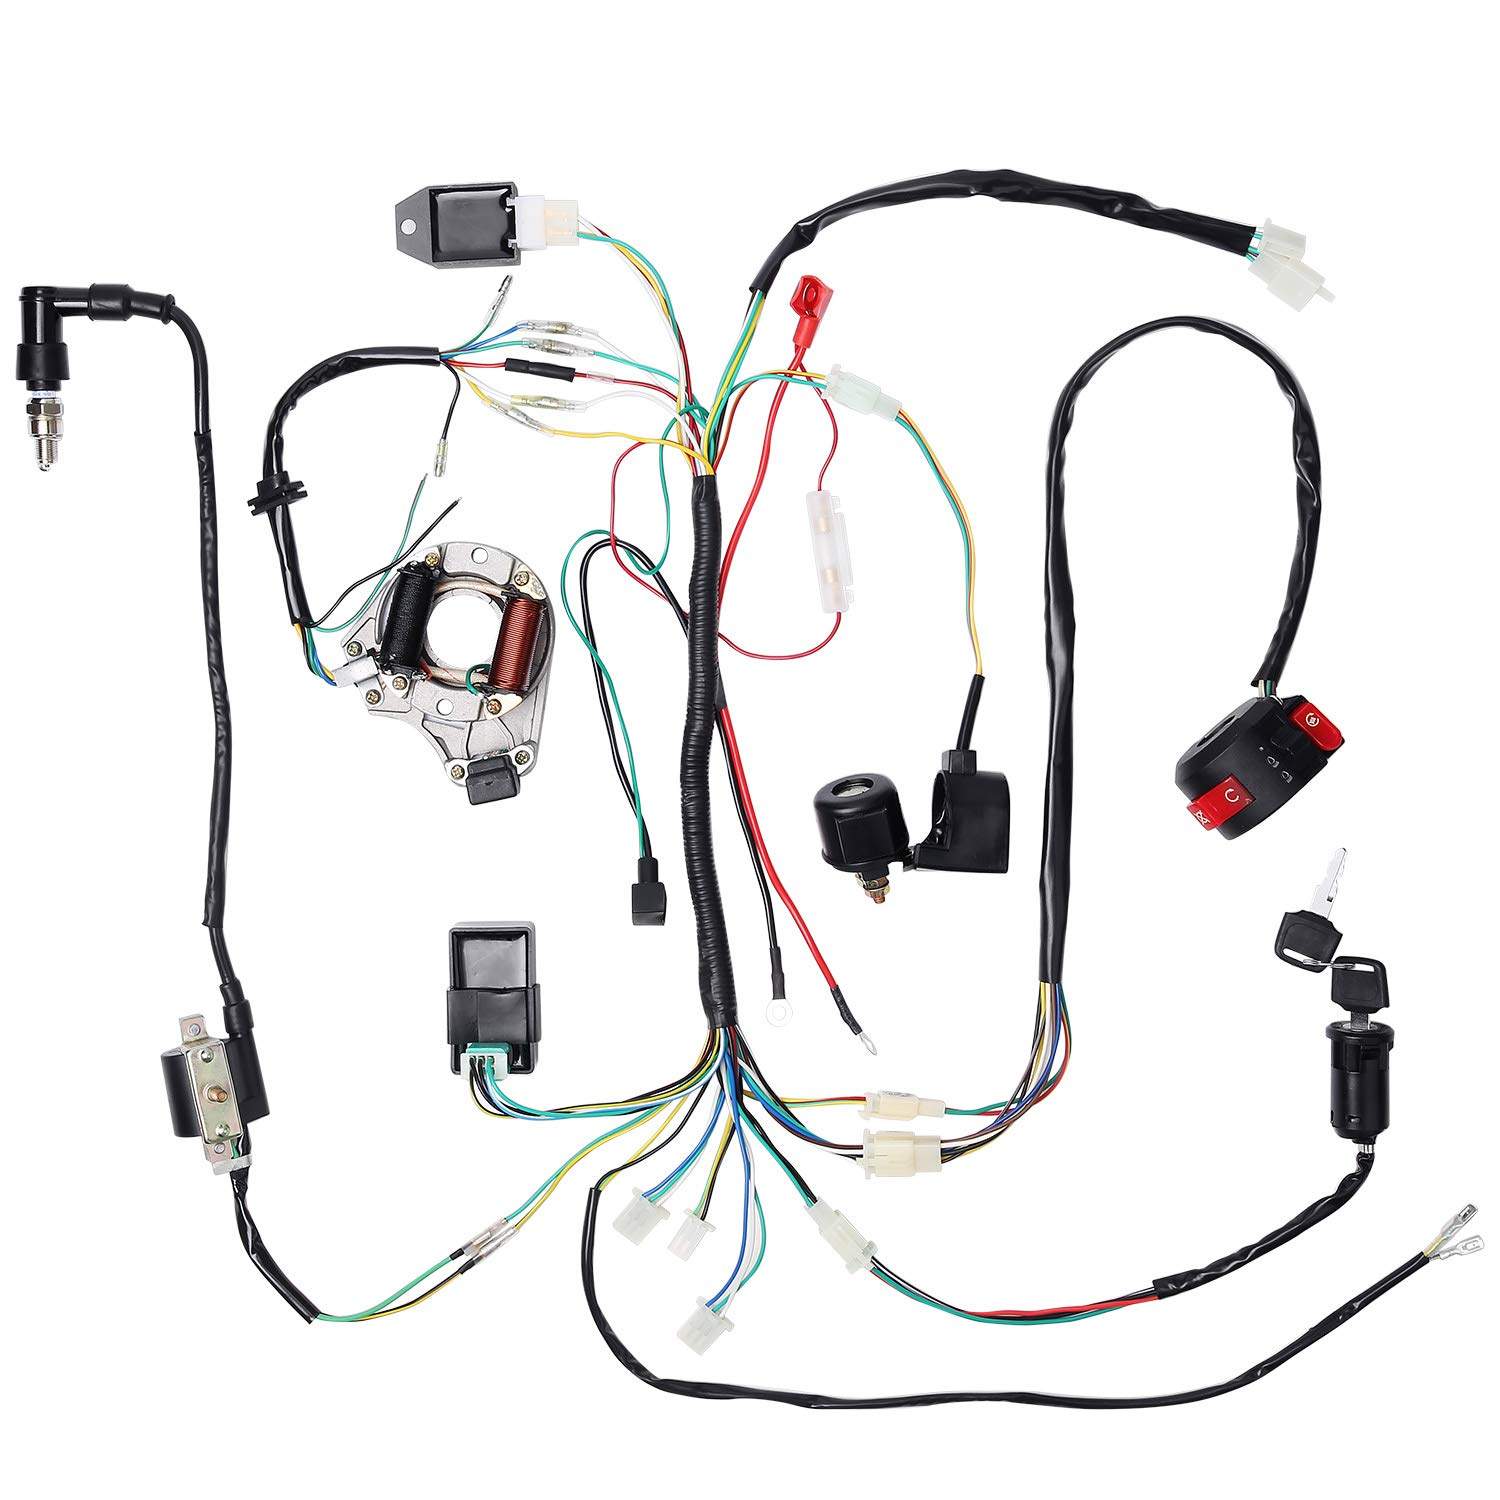 CISNO Complete Electrics Stator Coil CDI Wiring Harness for 4 Stroke on 4 stroke engine timing, 4 stroke diagram, 4 stroke exhaust, 4 stroke spark plug color, 4 stroke tuning, 4 stroke engine firing order, 4 stroke motor, 4 stroke fuel injection,